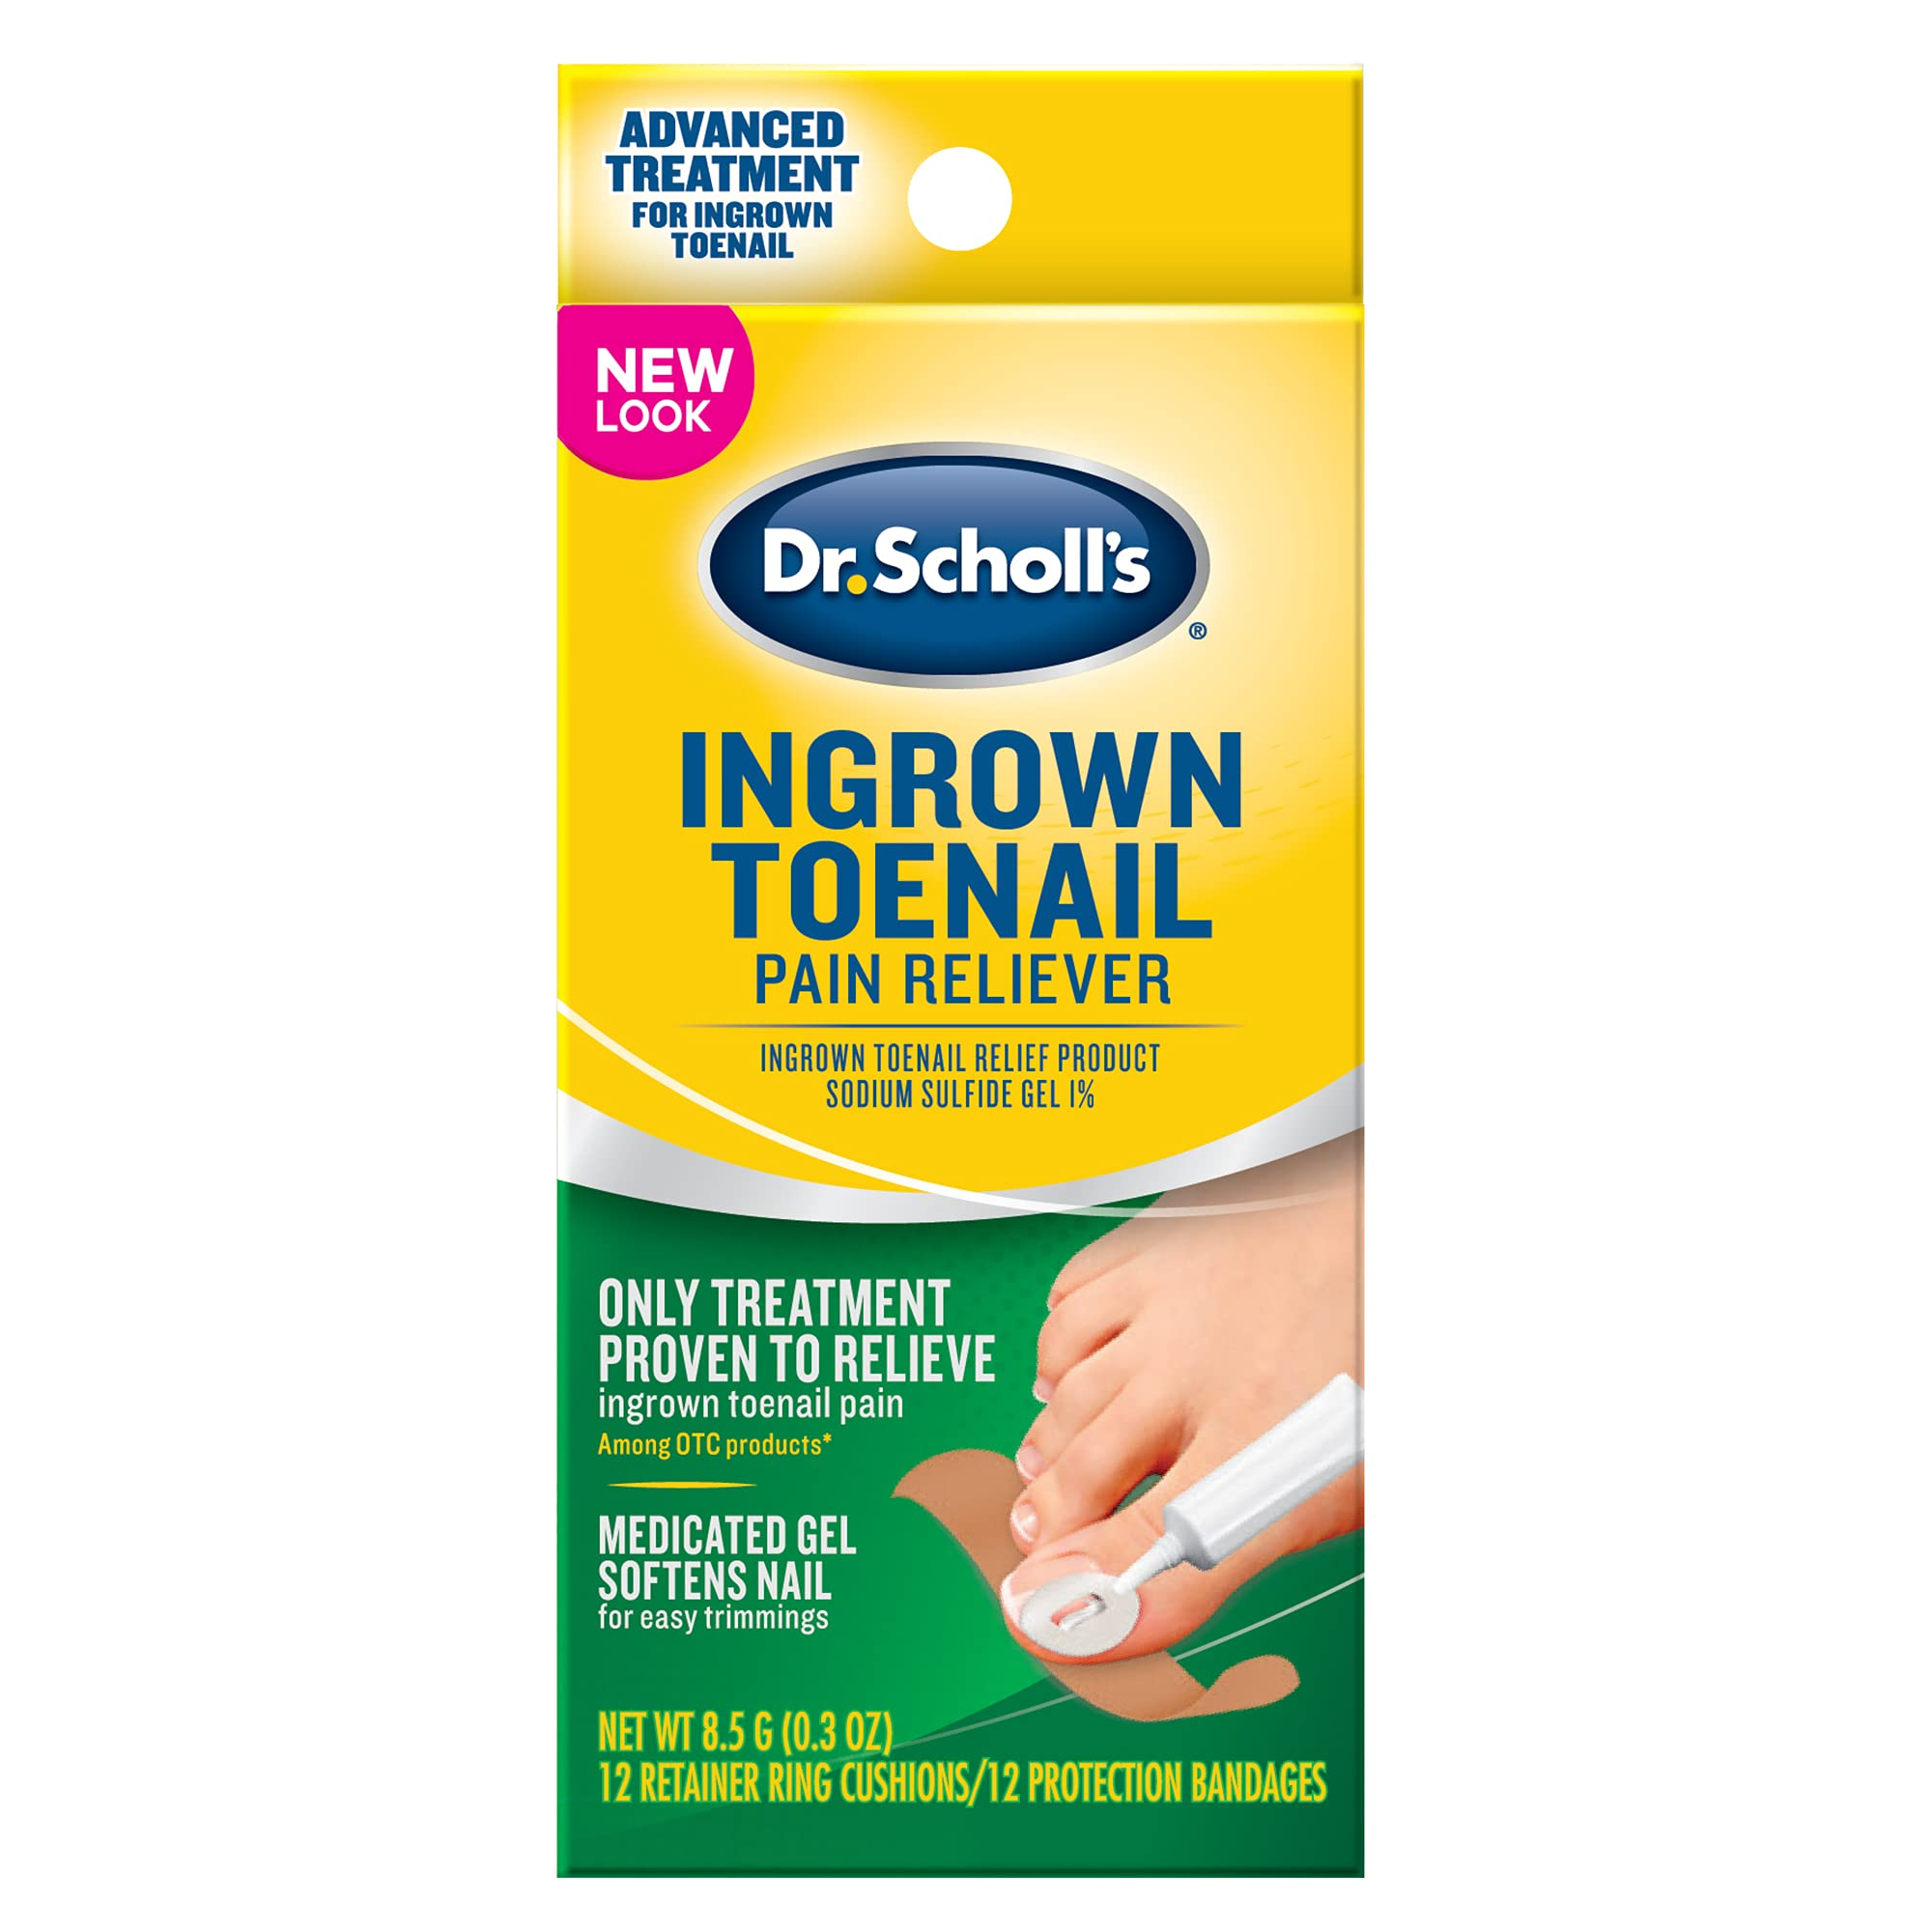 Dr. Scholl's Ingrown Toenail Pain Reliever, 0.3oz / Medicated Gel Softens Nails for Easy Trimming and Foam Ring and Bandage Protect the Affected Area